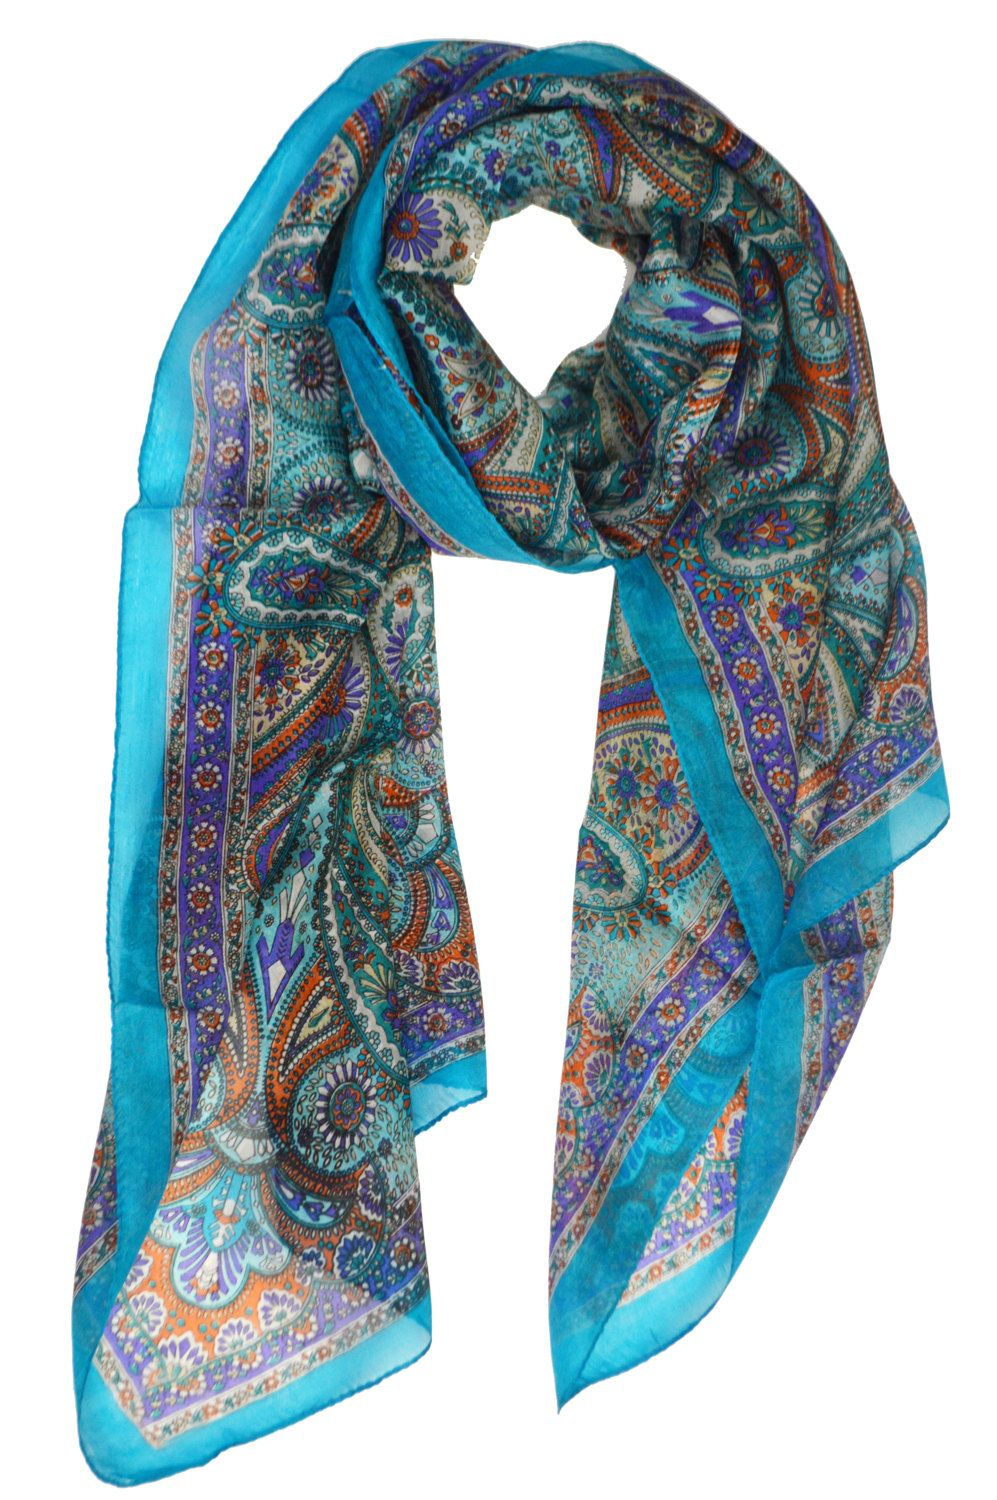 "INDIAN 100/%PURE SILK HANDMADE BLACK PAISLEY /& FLORAL DESIGN SCARF 6/"" x 40/"" £5.95"